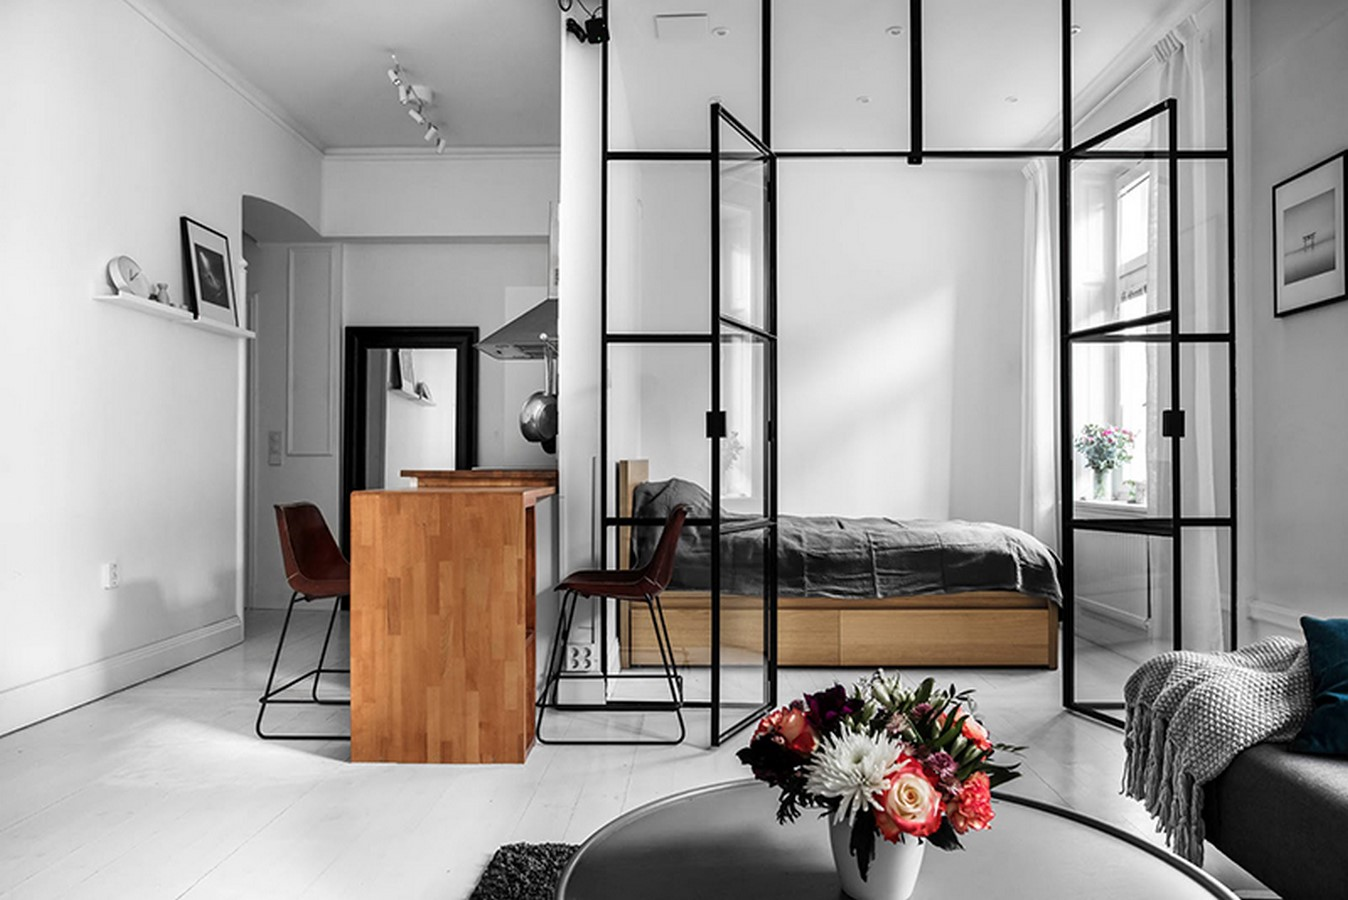 How minimalistic designs are creating large impact in the 21st century? - Sheet5